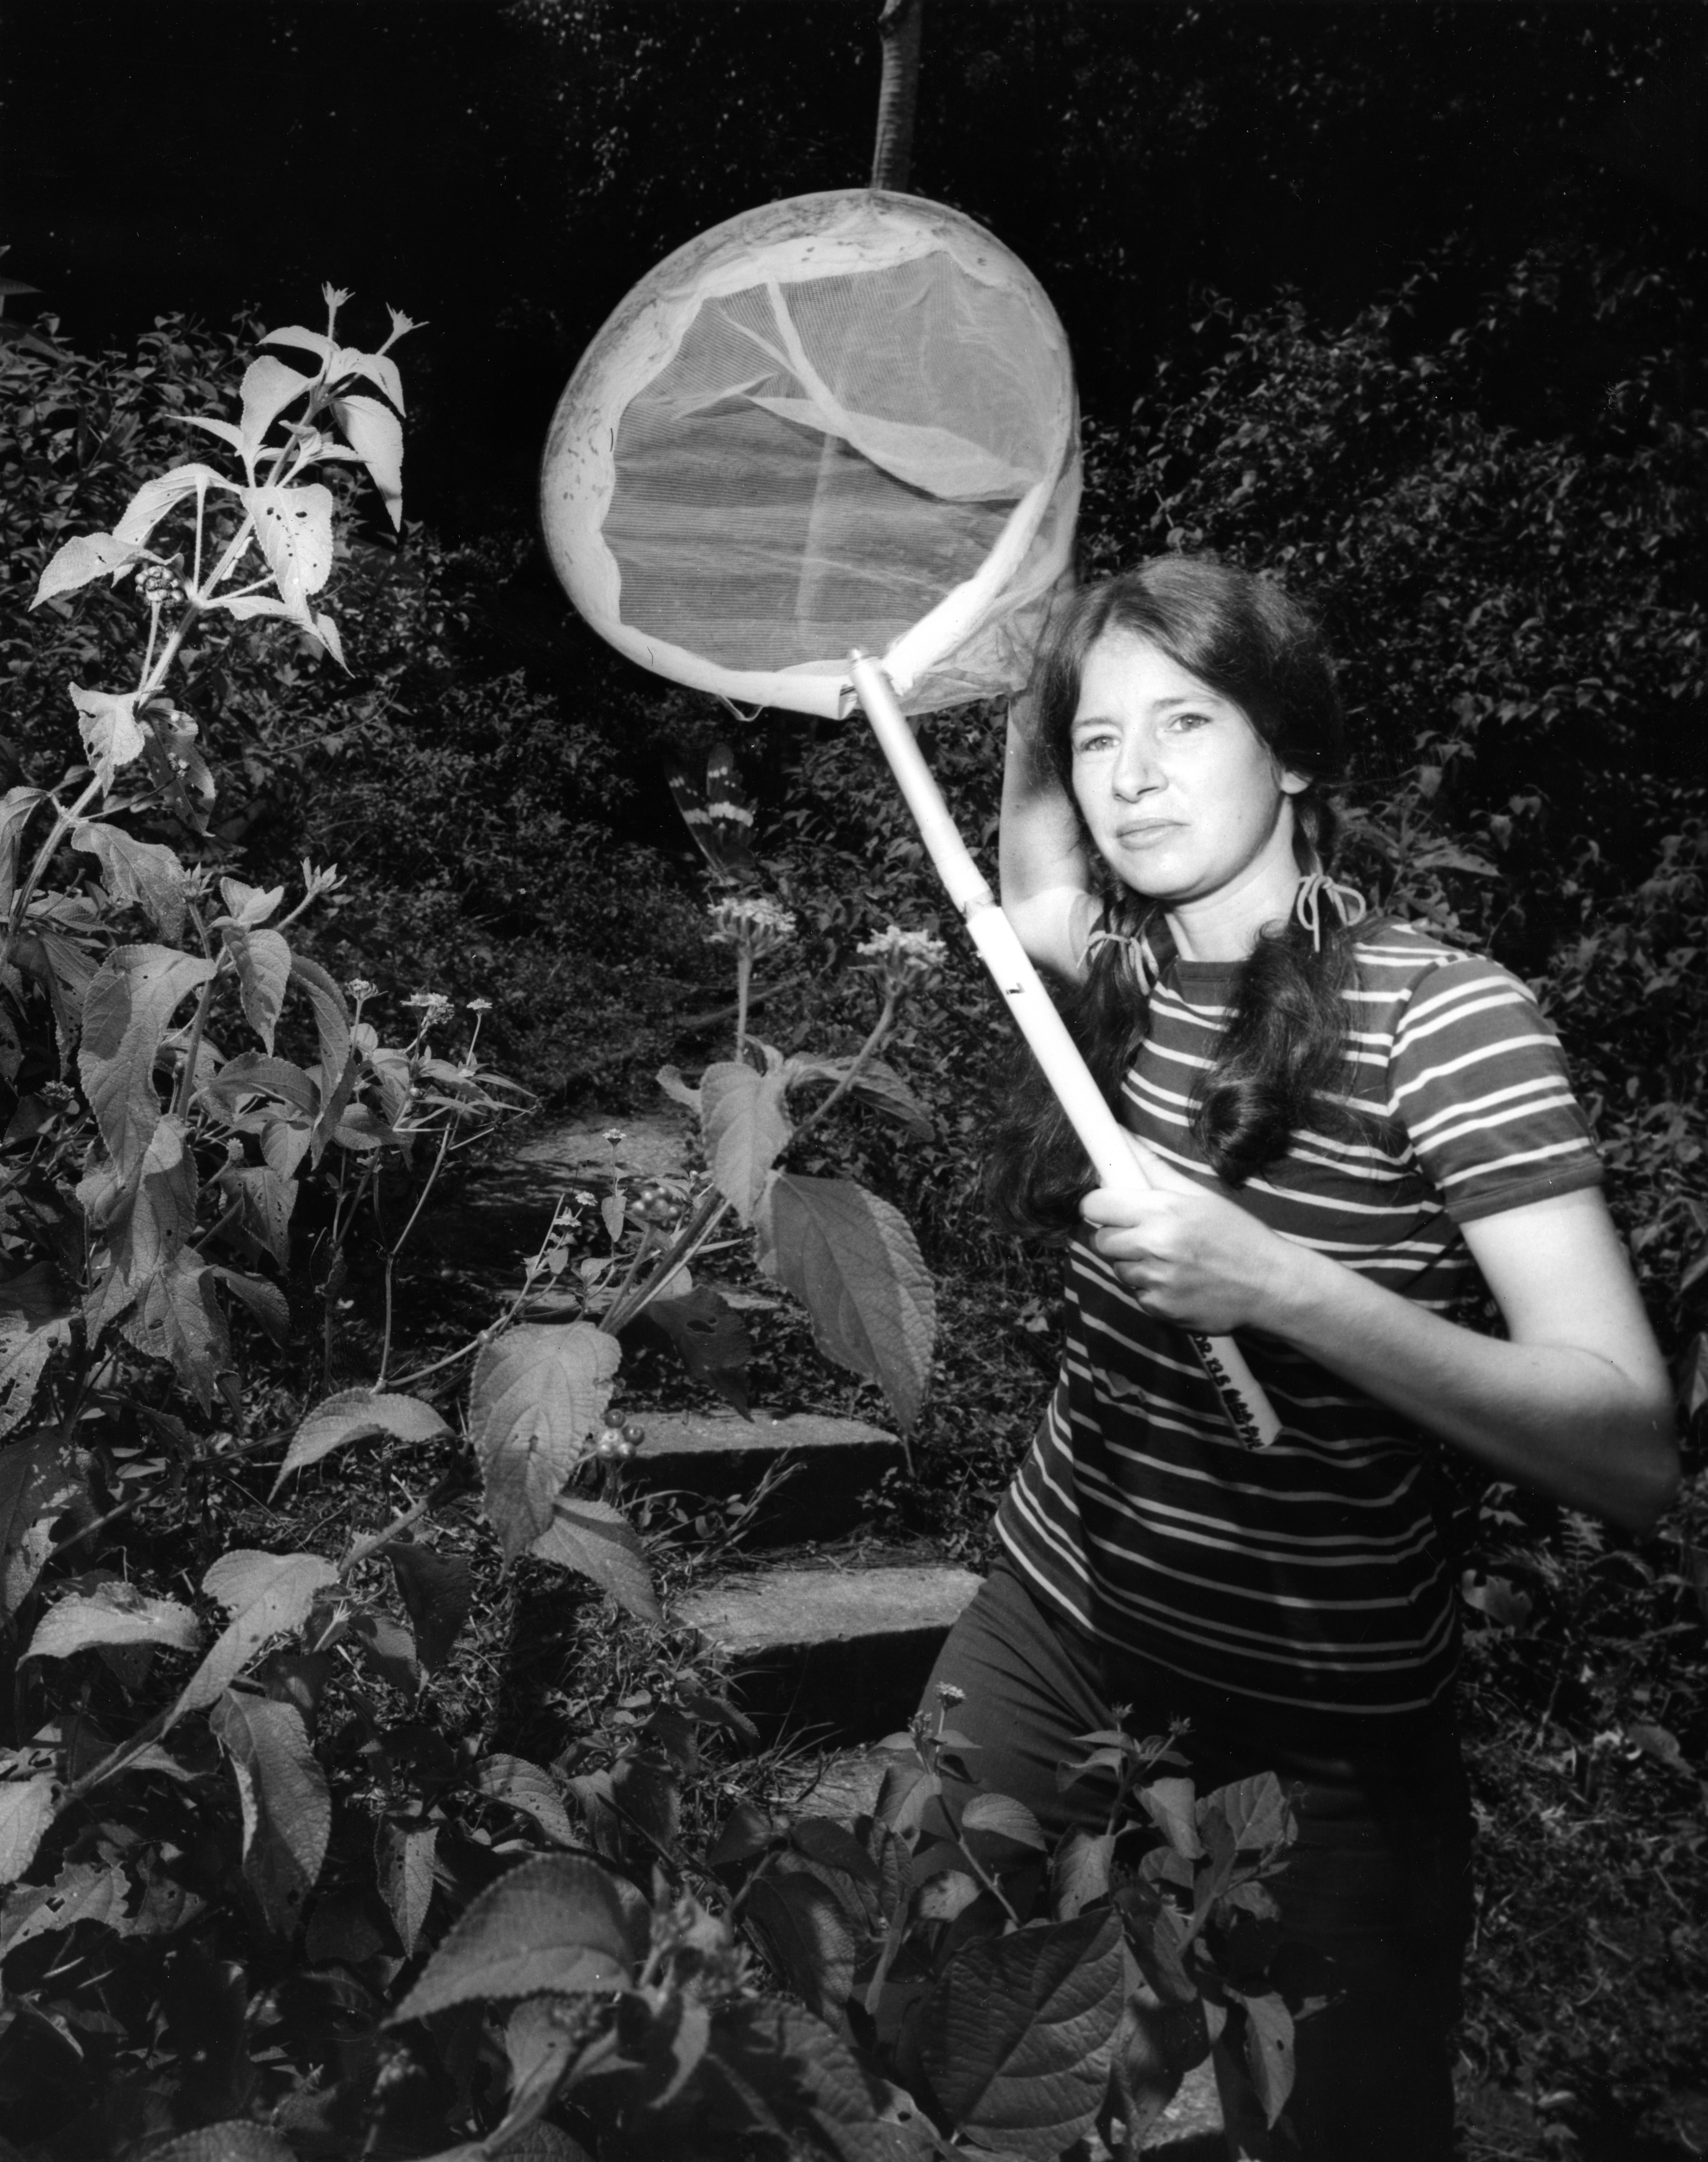 A young Aiello holds a net near bushes of plants.